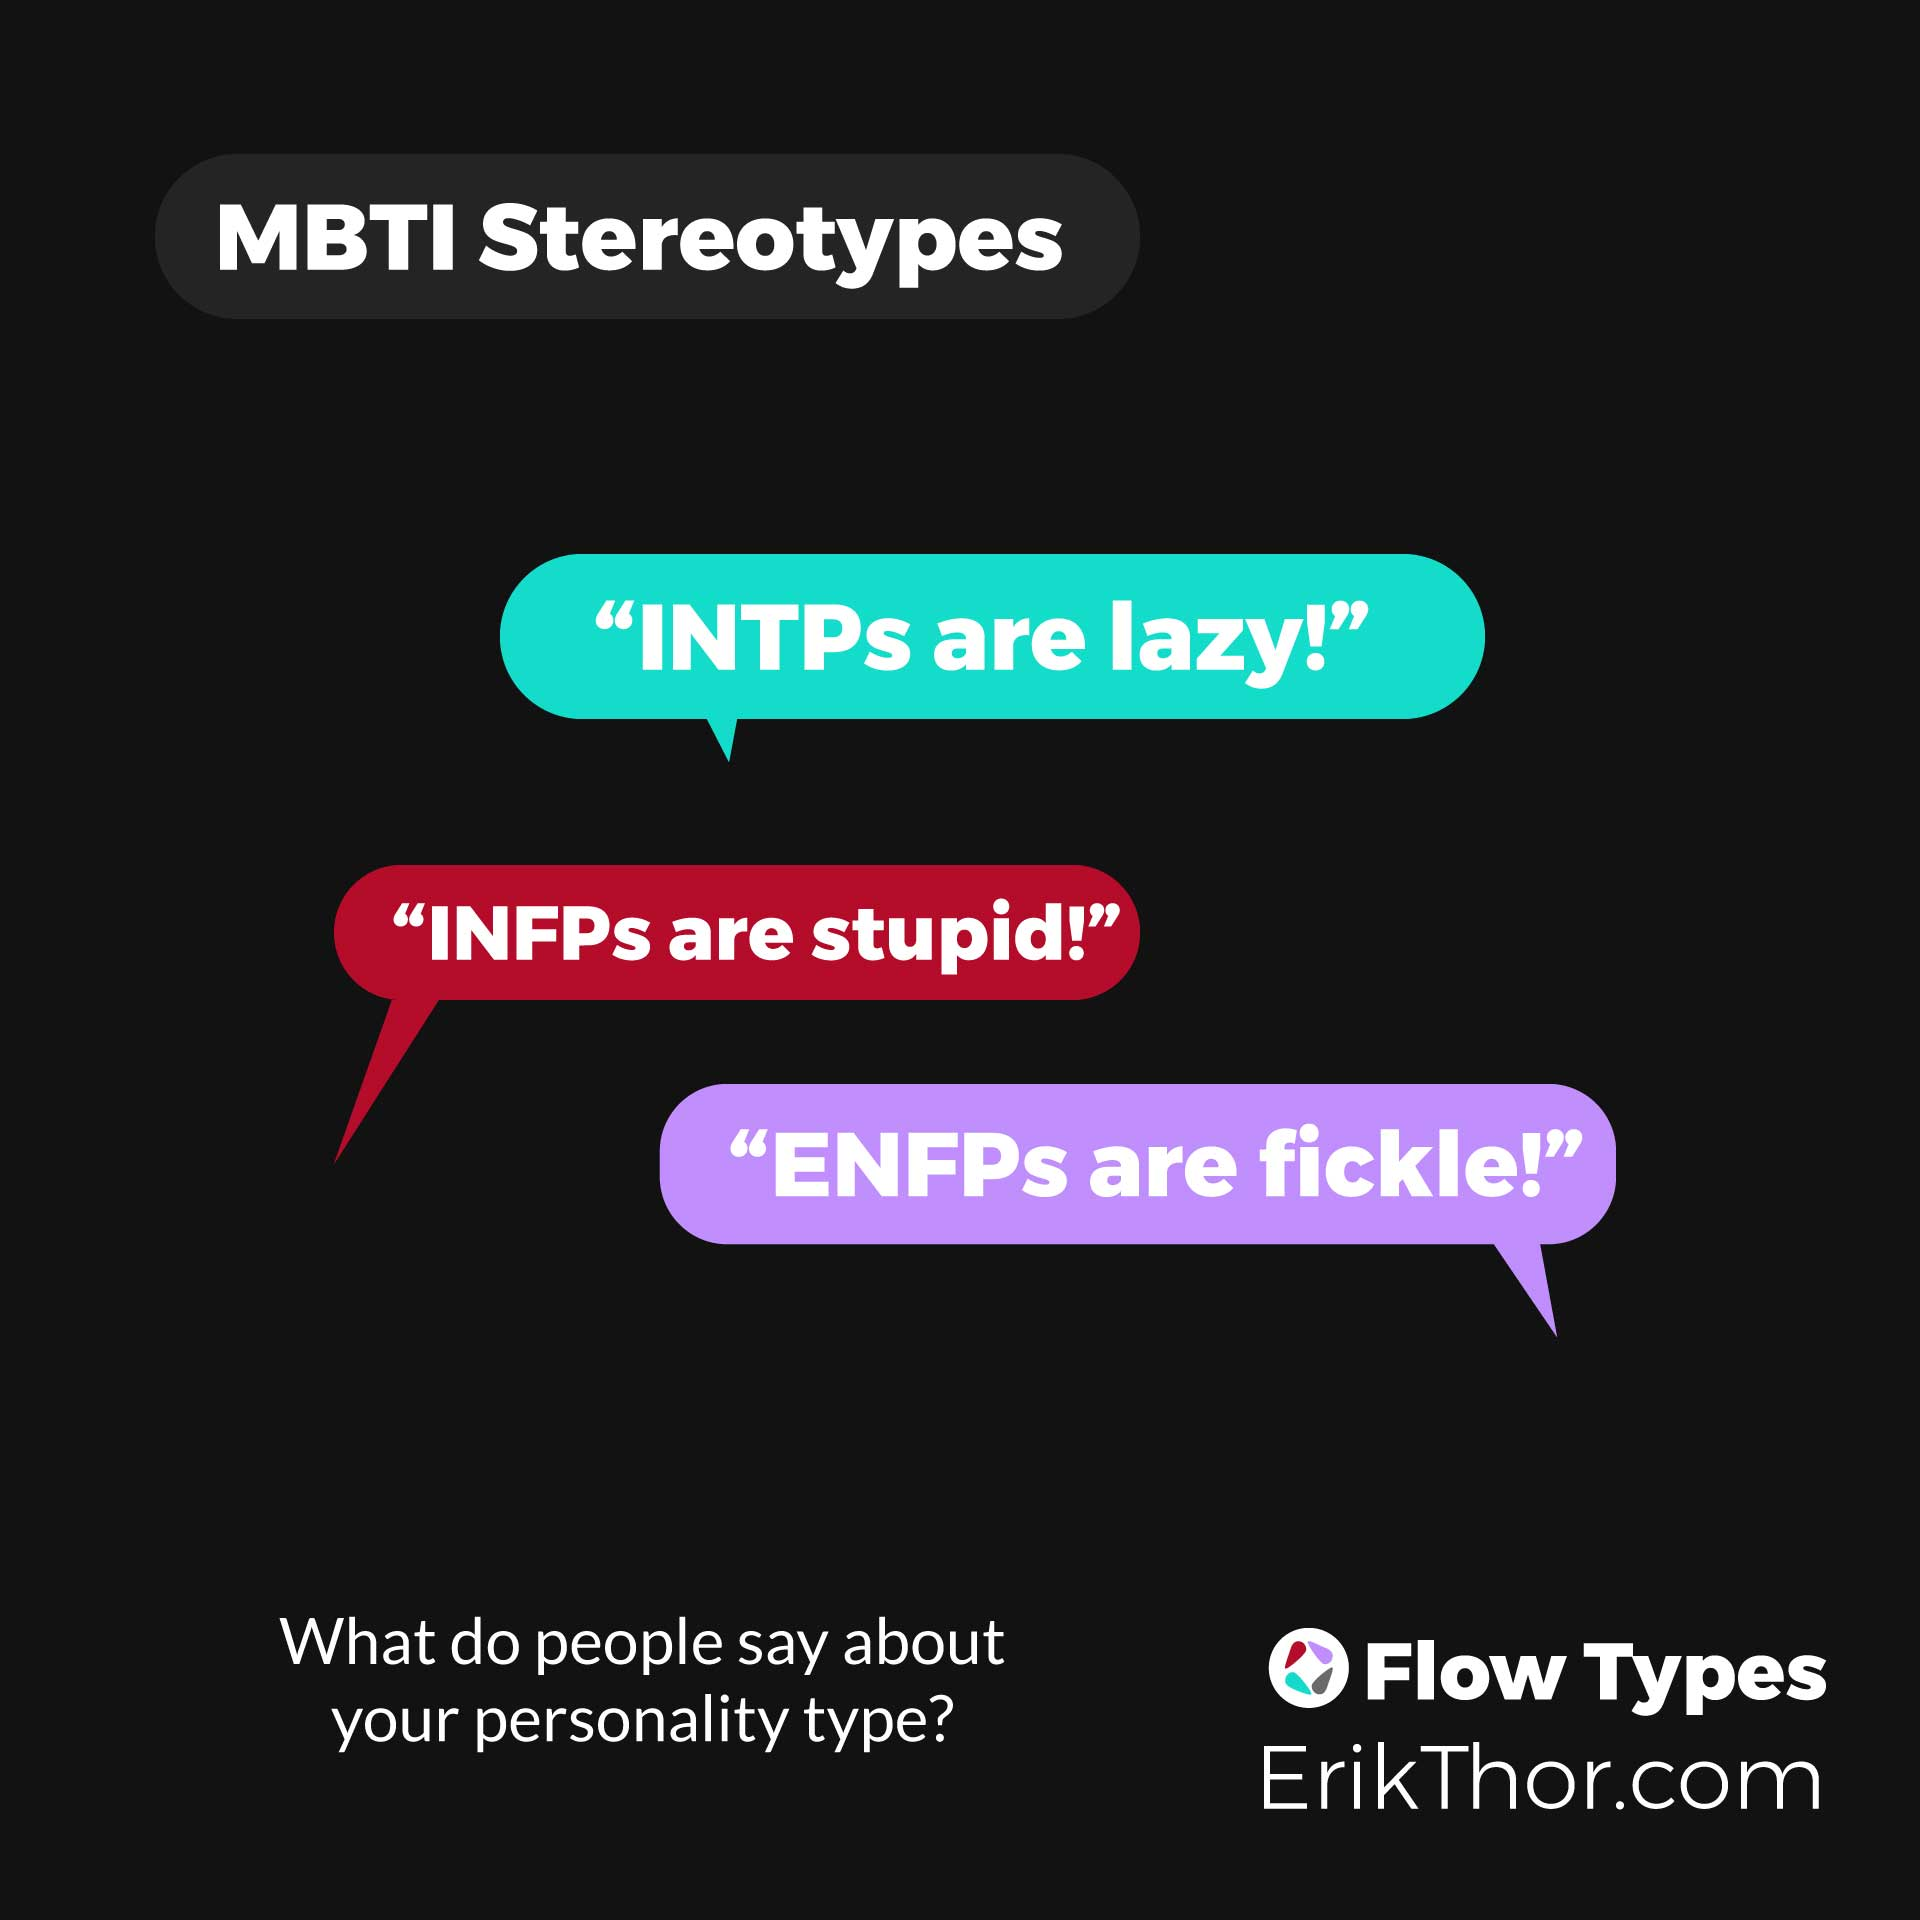 NF Stereotypes